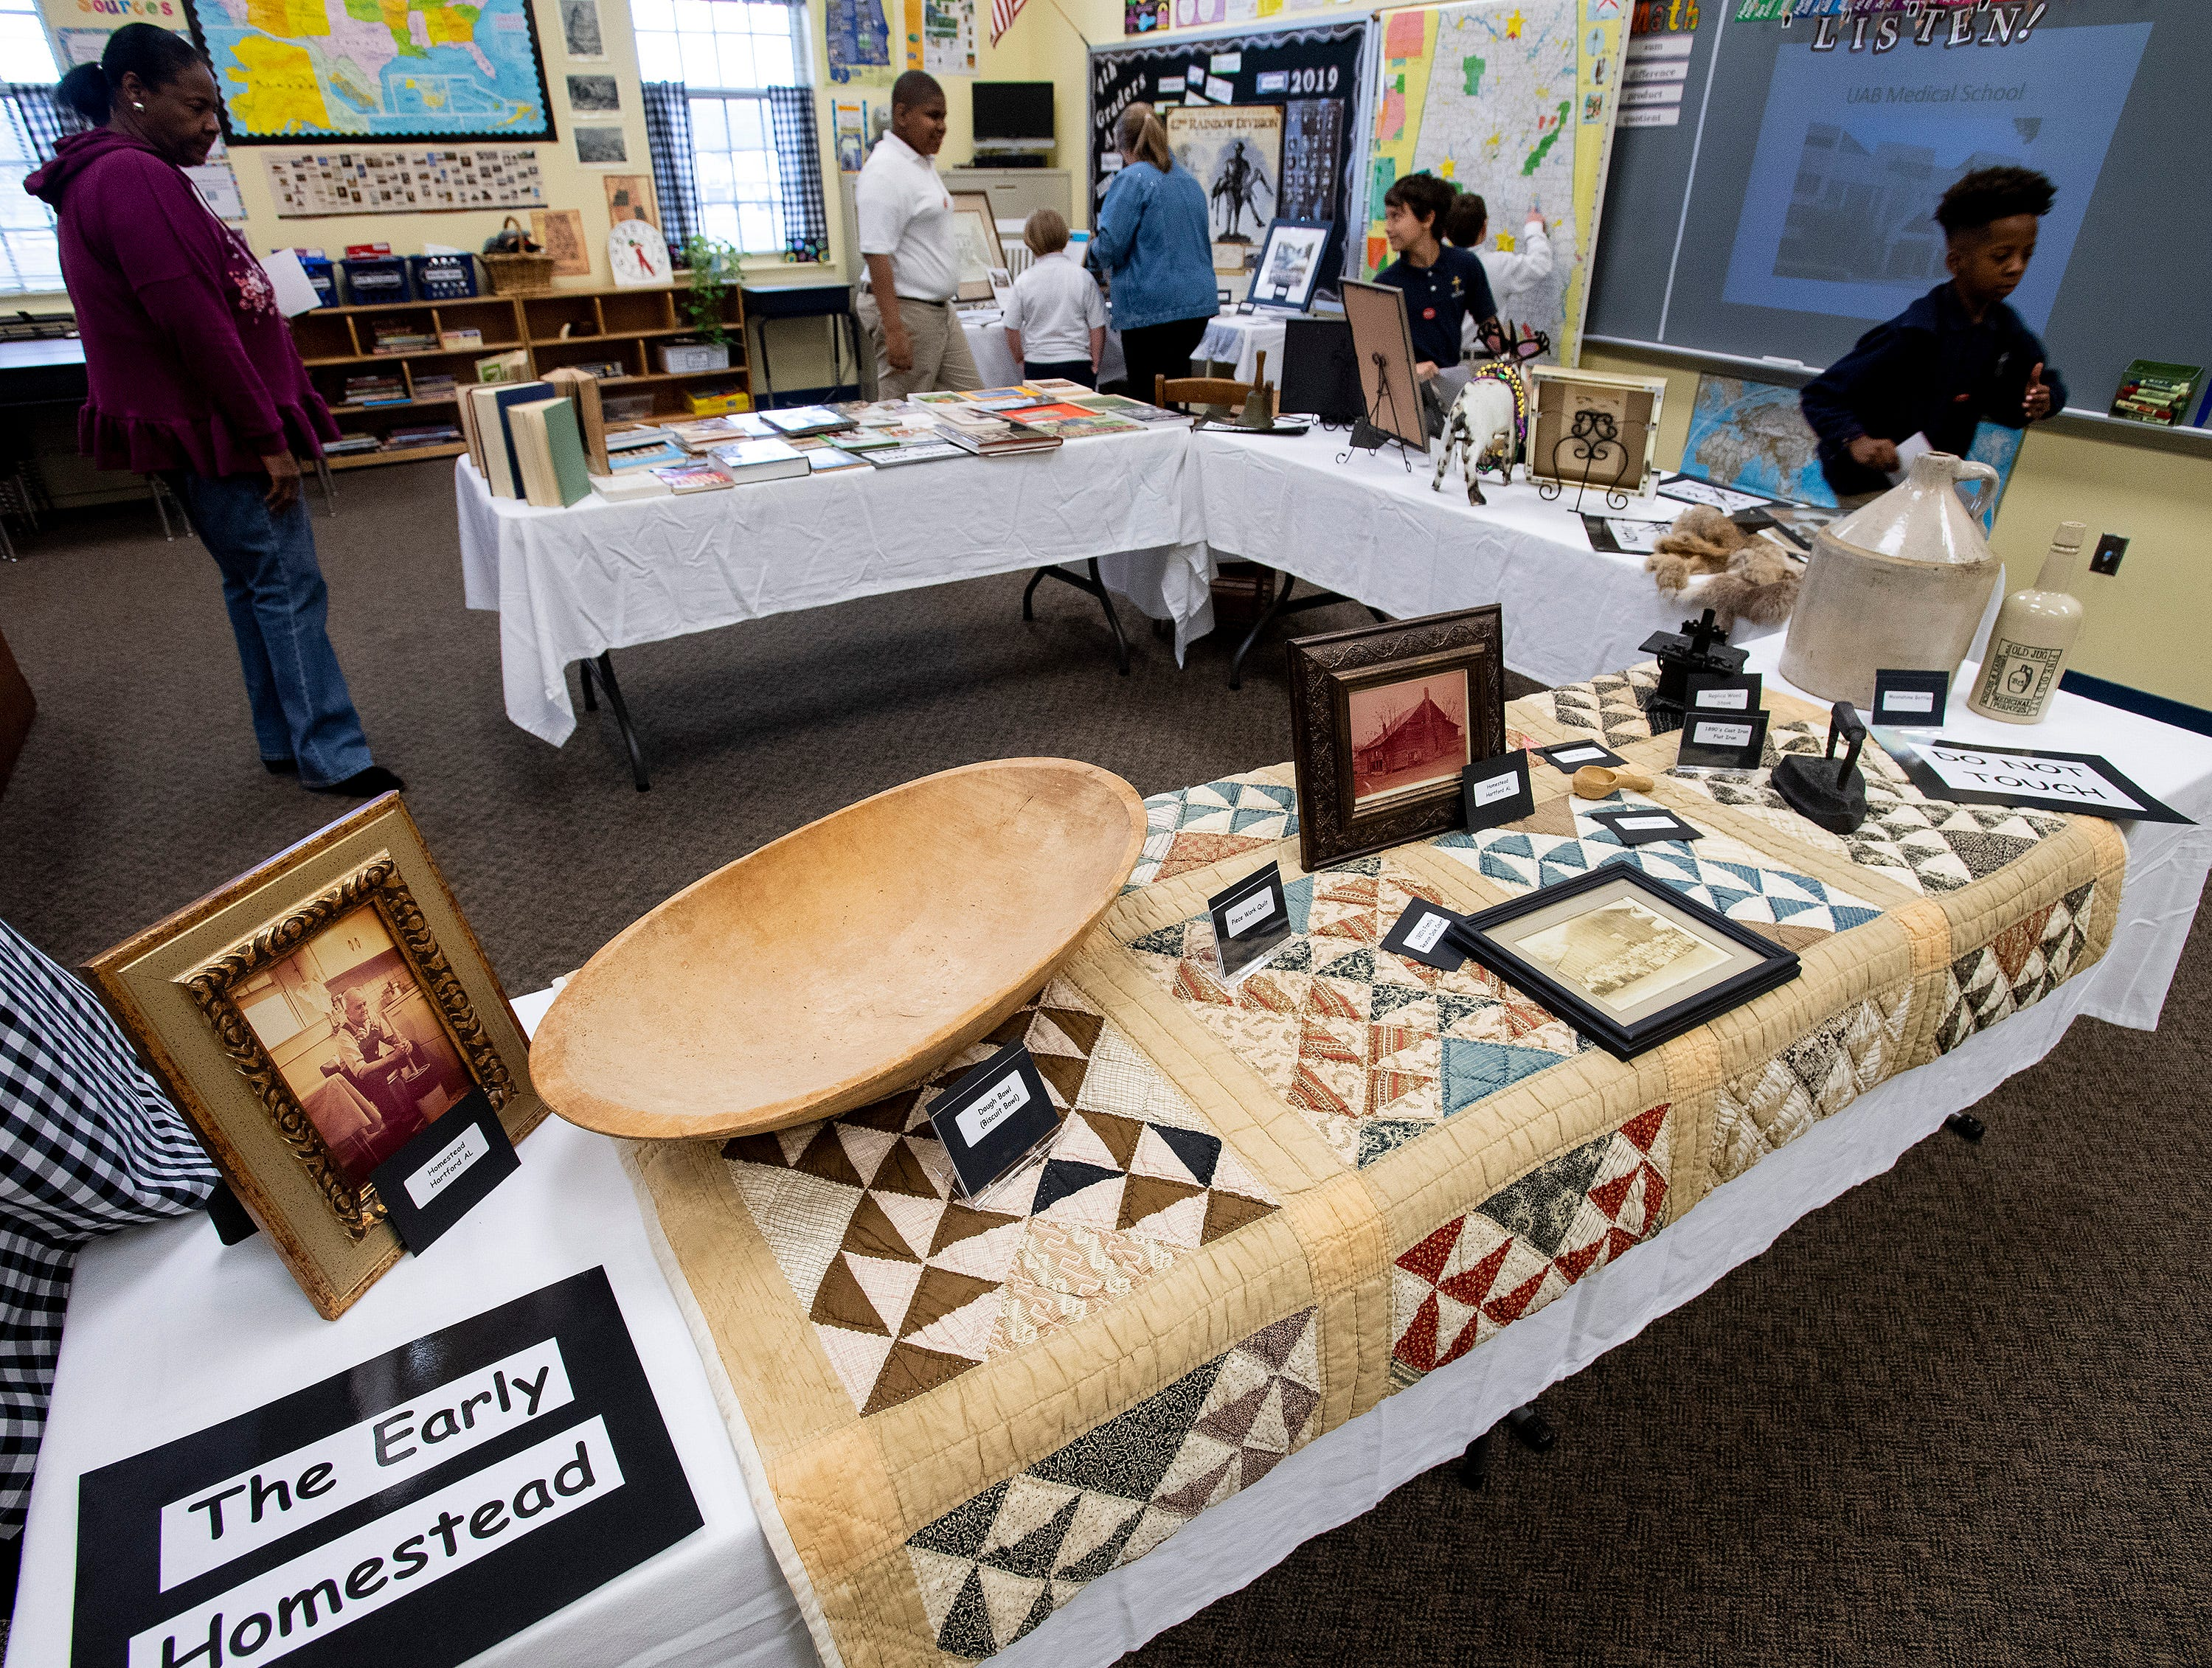 A display of artifacts is viewed while the Holy Cross Episcopal School celebrates the Alabama Bicentennial at the school in Montgomery, Ala., on Friday February 15, 2019.